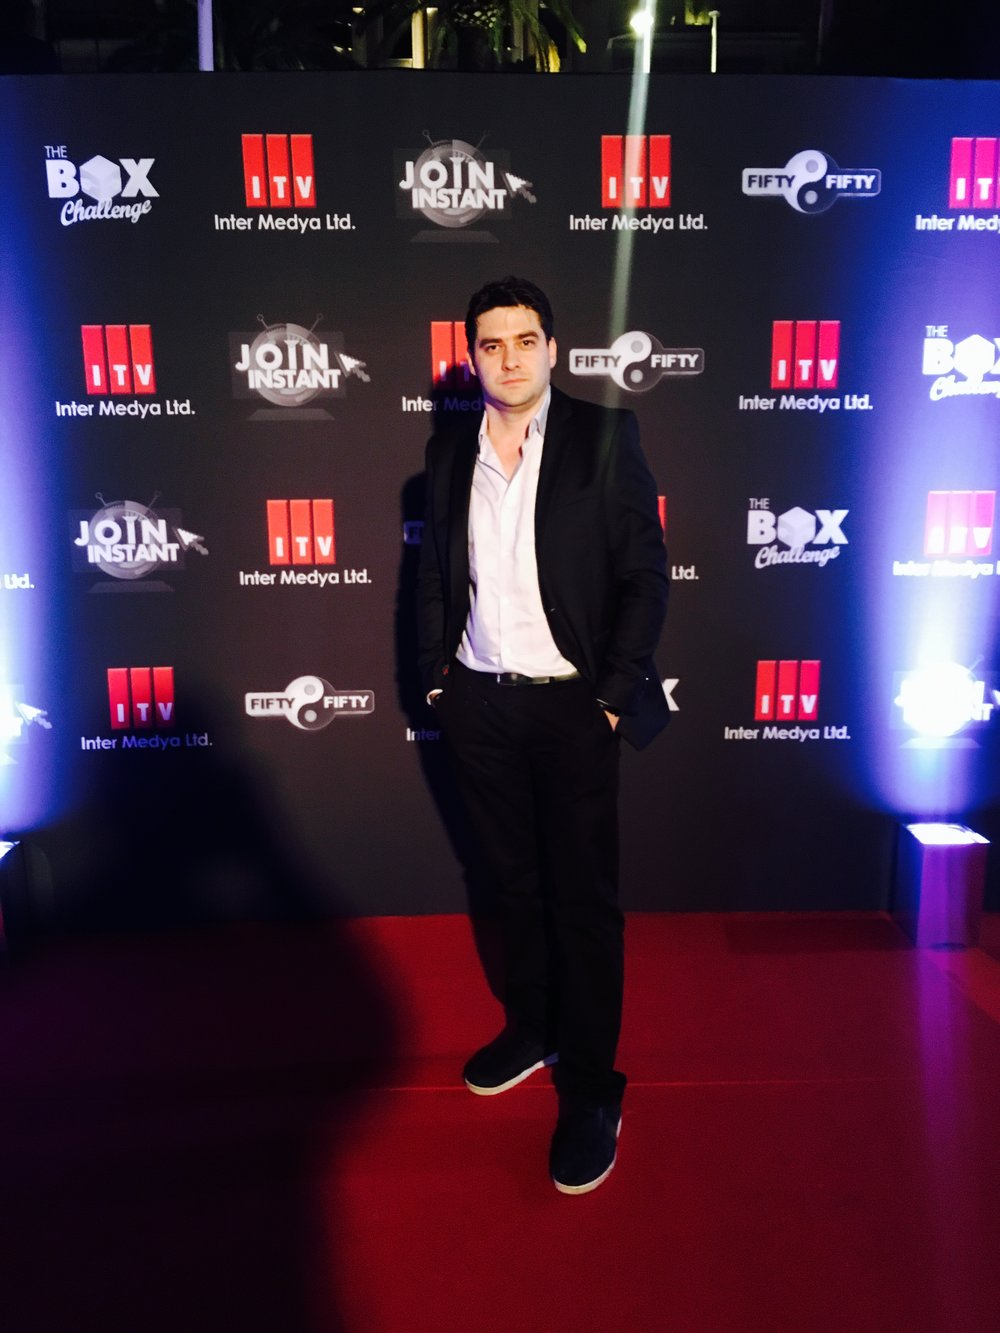 mip silviu red carpet.jpg